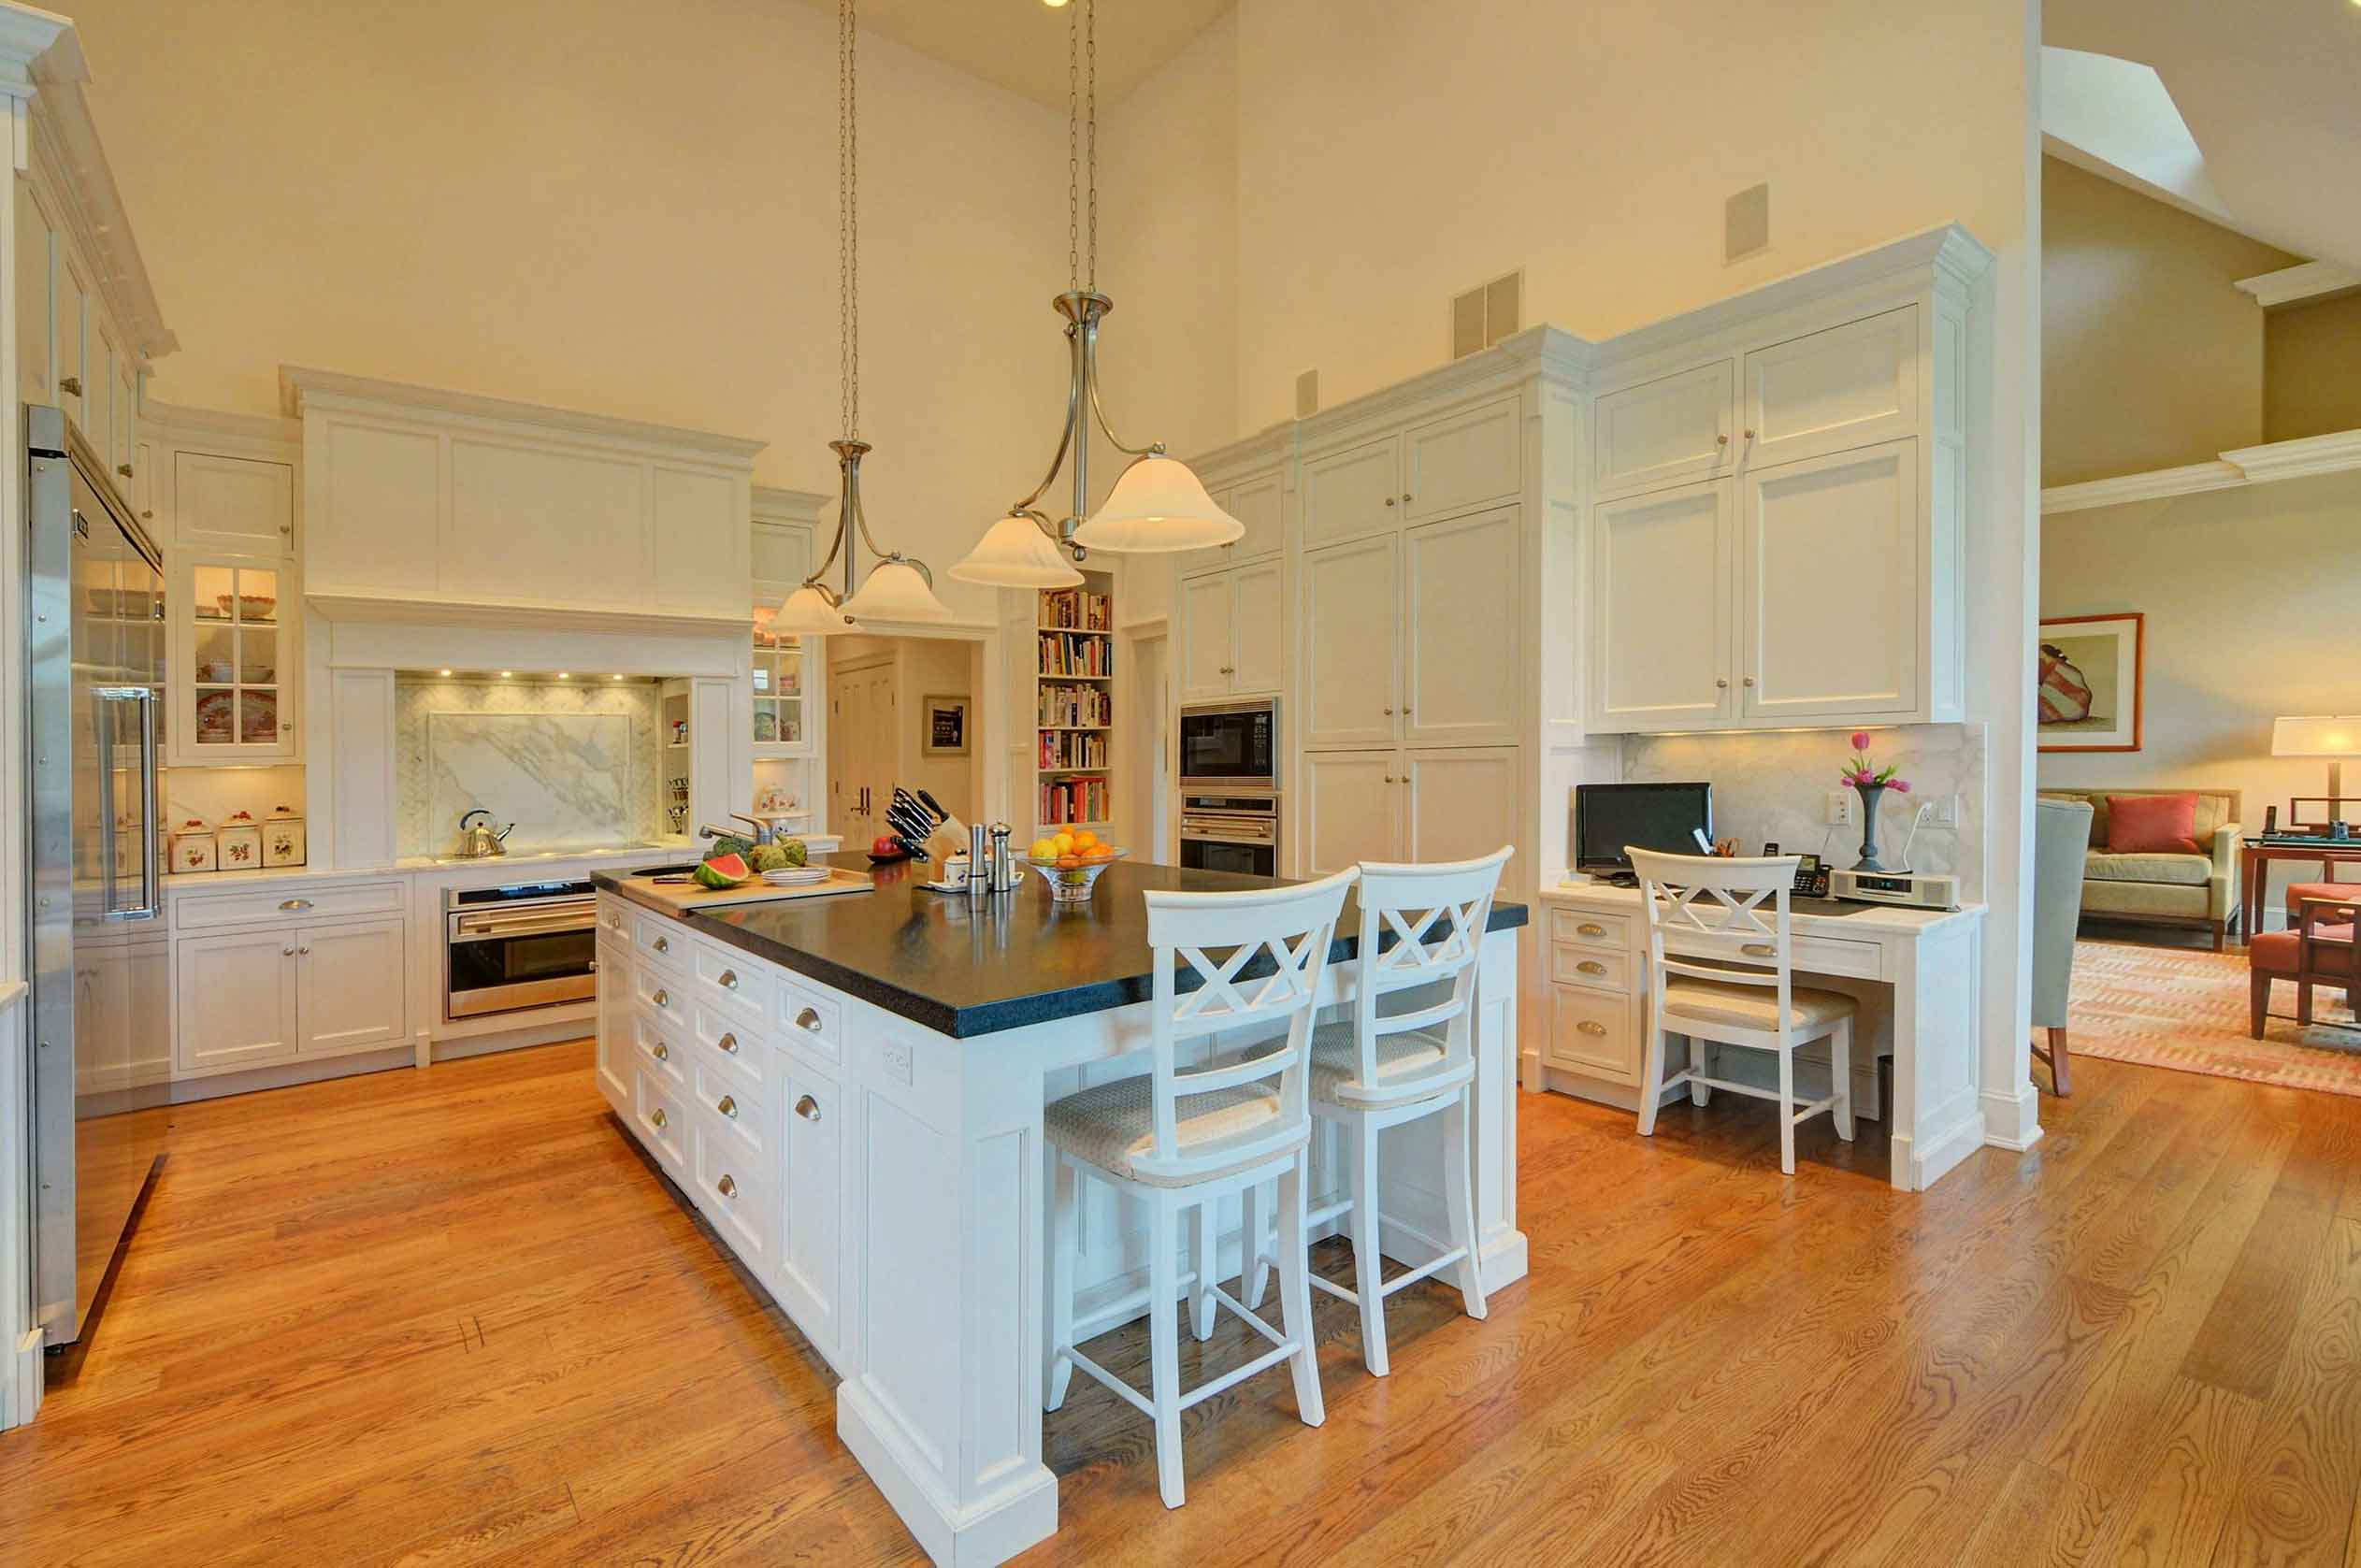 This home's elegant country kitchen, with its open layout, is ideal for catering large events.